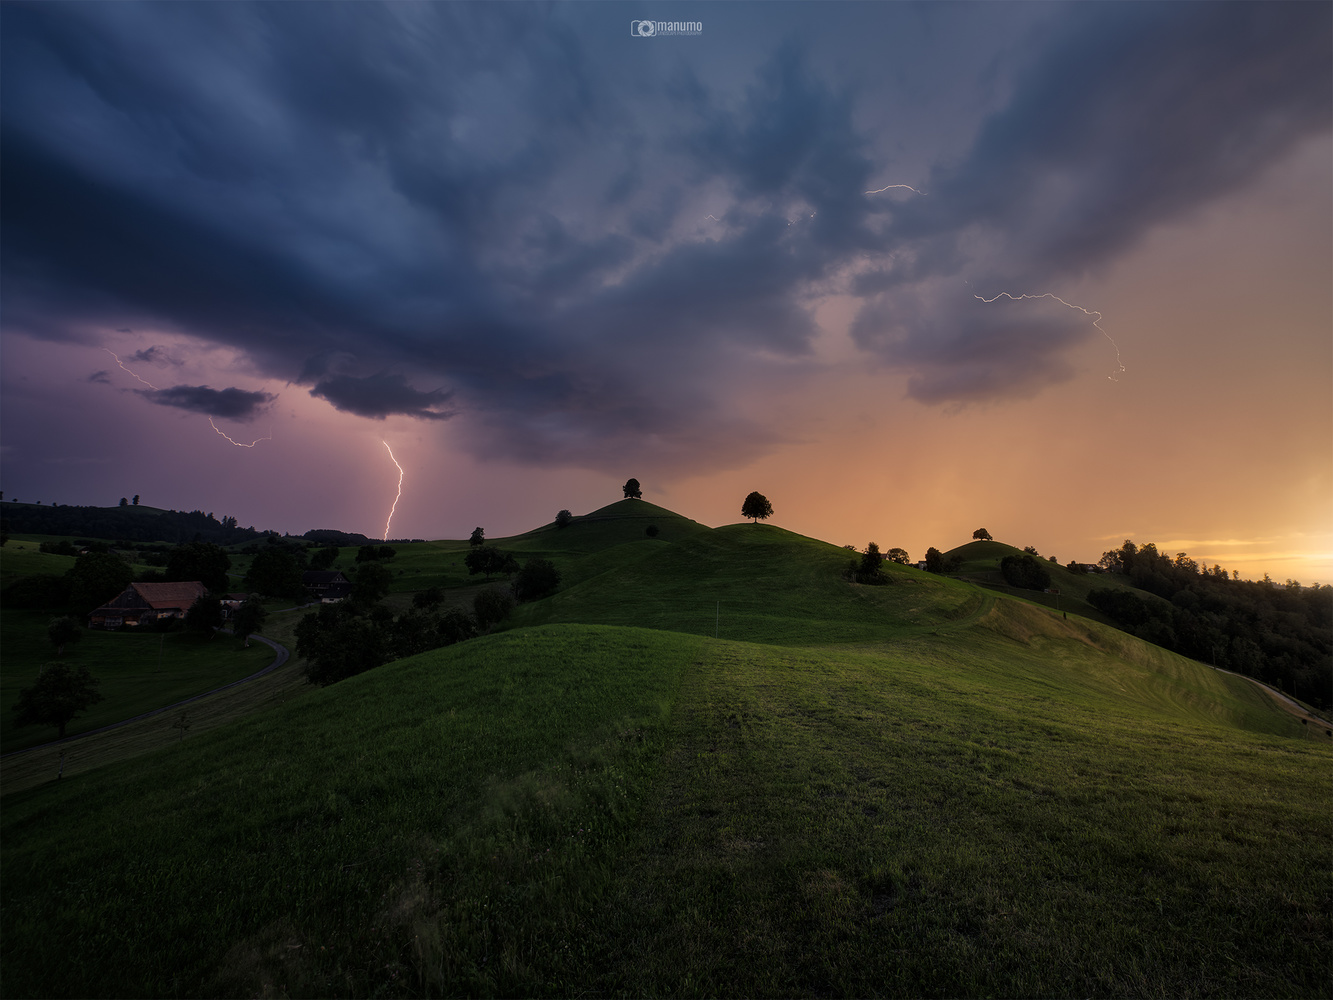 STORMY HILLS by Manuel Mohorovic